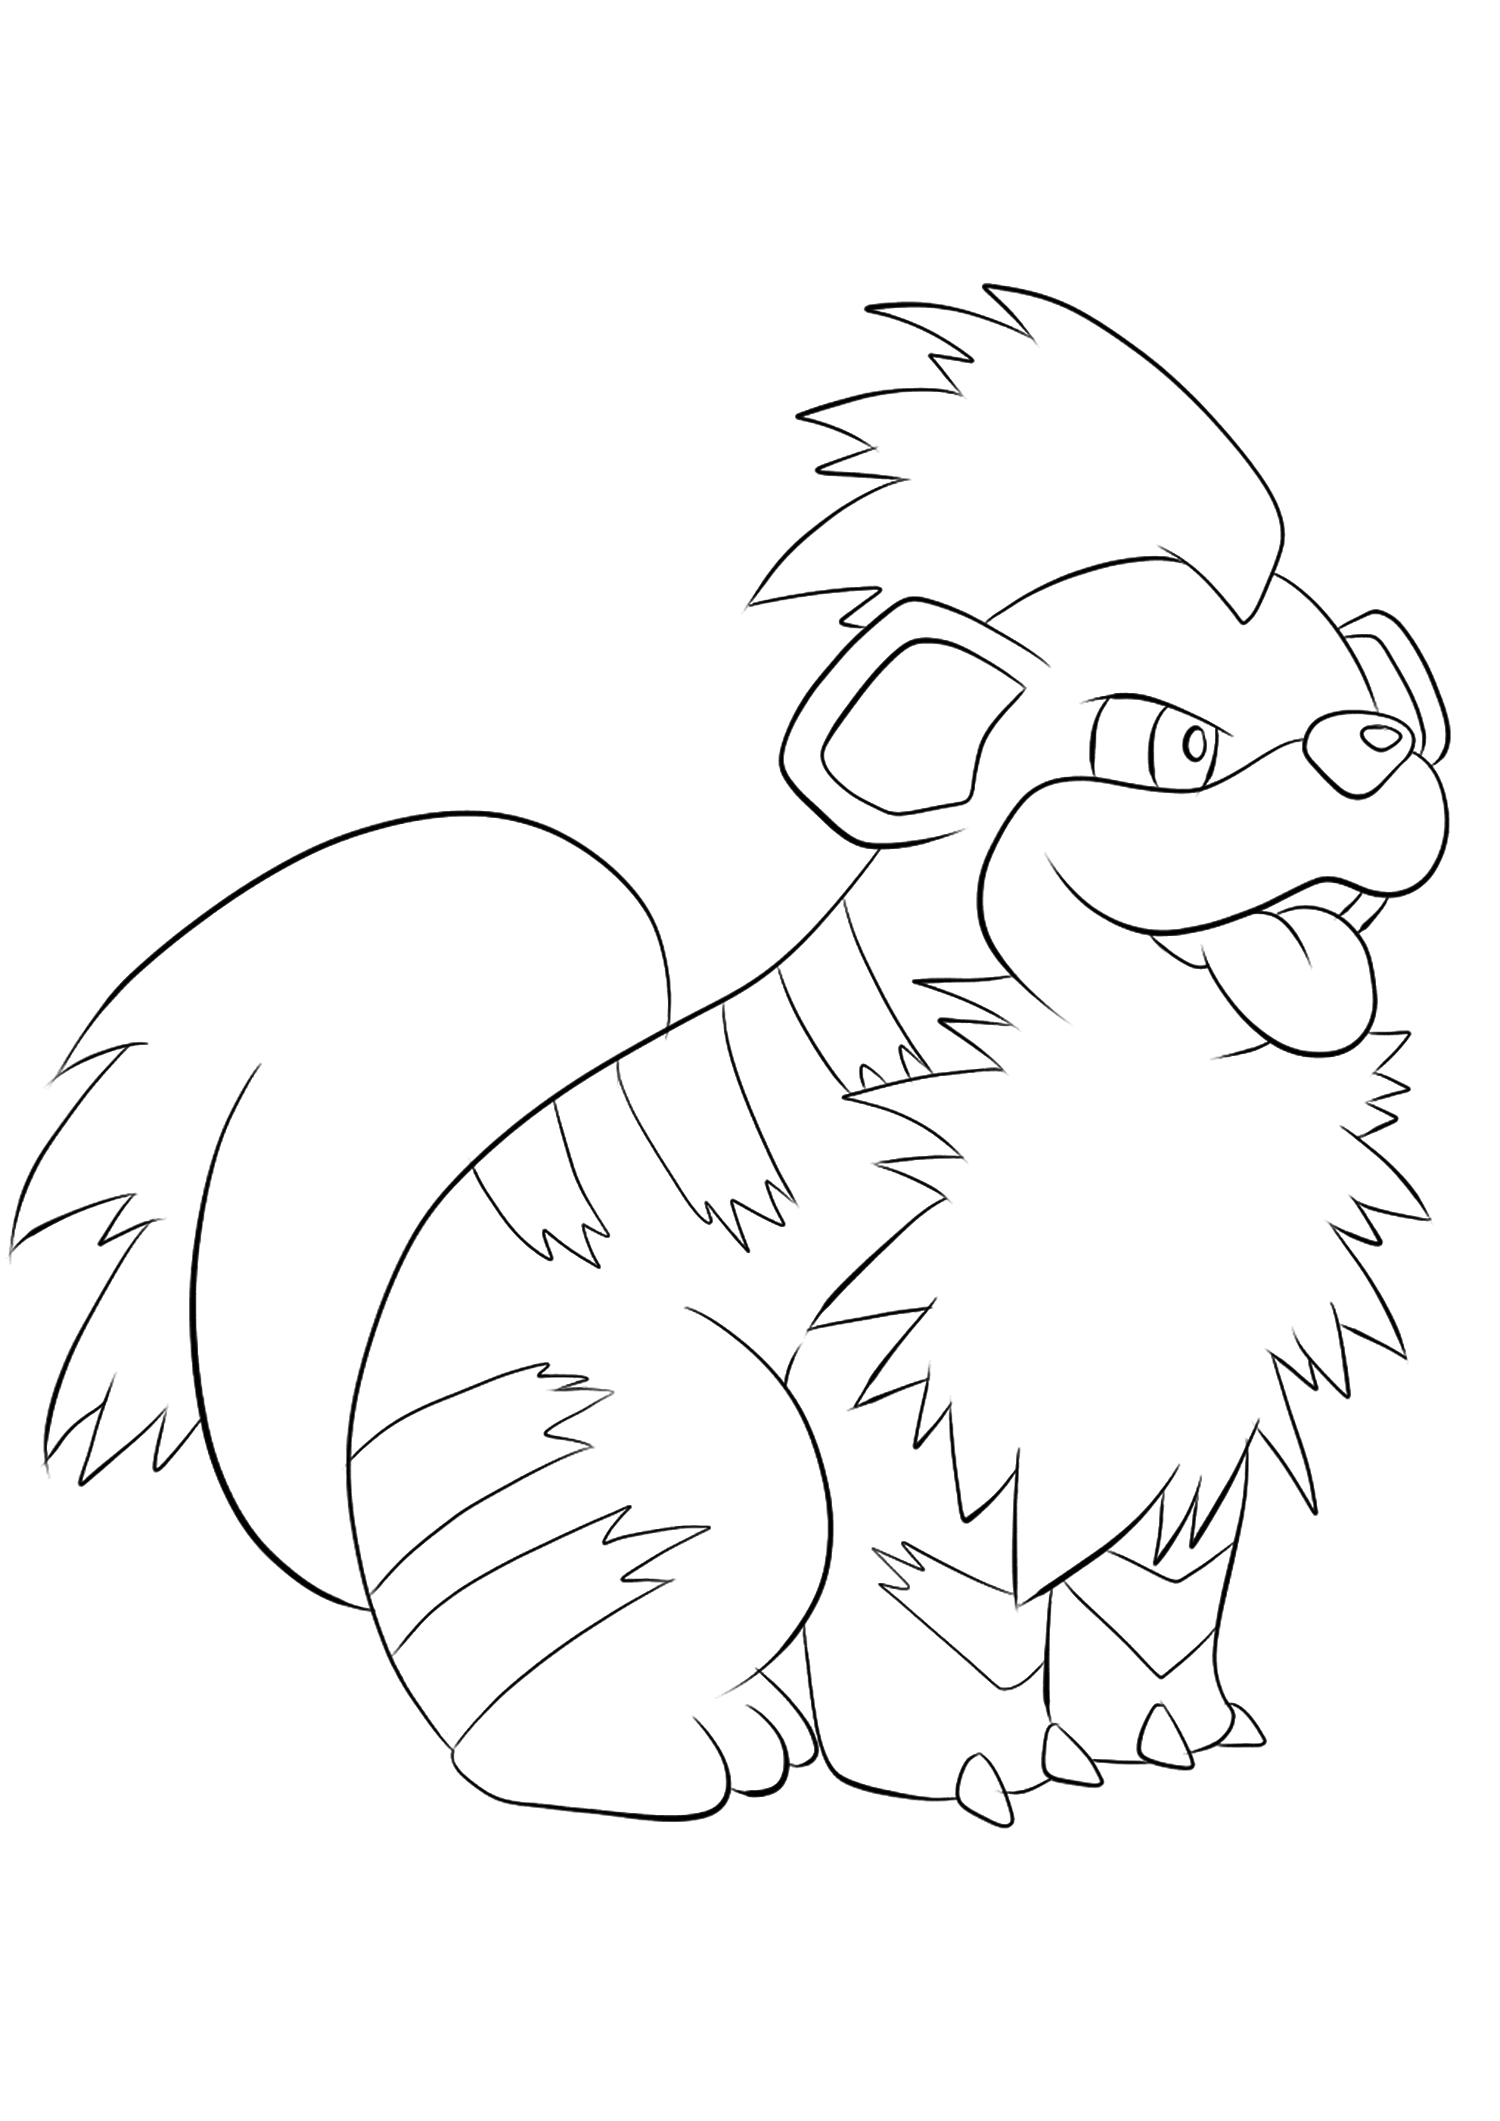 Caninos (No.58)Coloriage de Caninos (Growlithe), Pokémon de Génération I, de type : FeuOriginal image credit: Pokemon linearts by Lilly Gerbil on Deviantart.Permission:  All rights reserved © Pokemon company and Ken Sugimori.